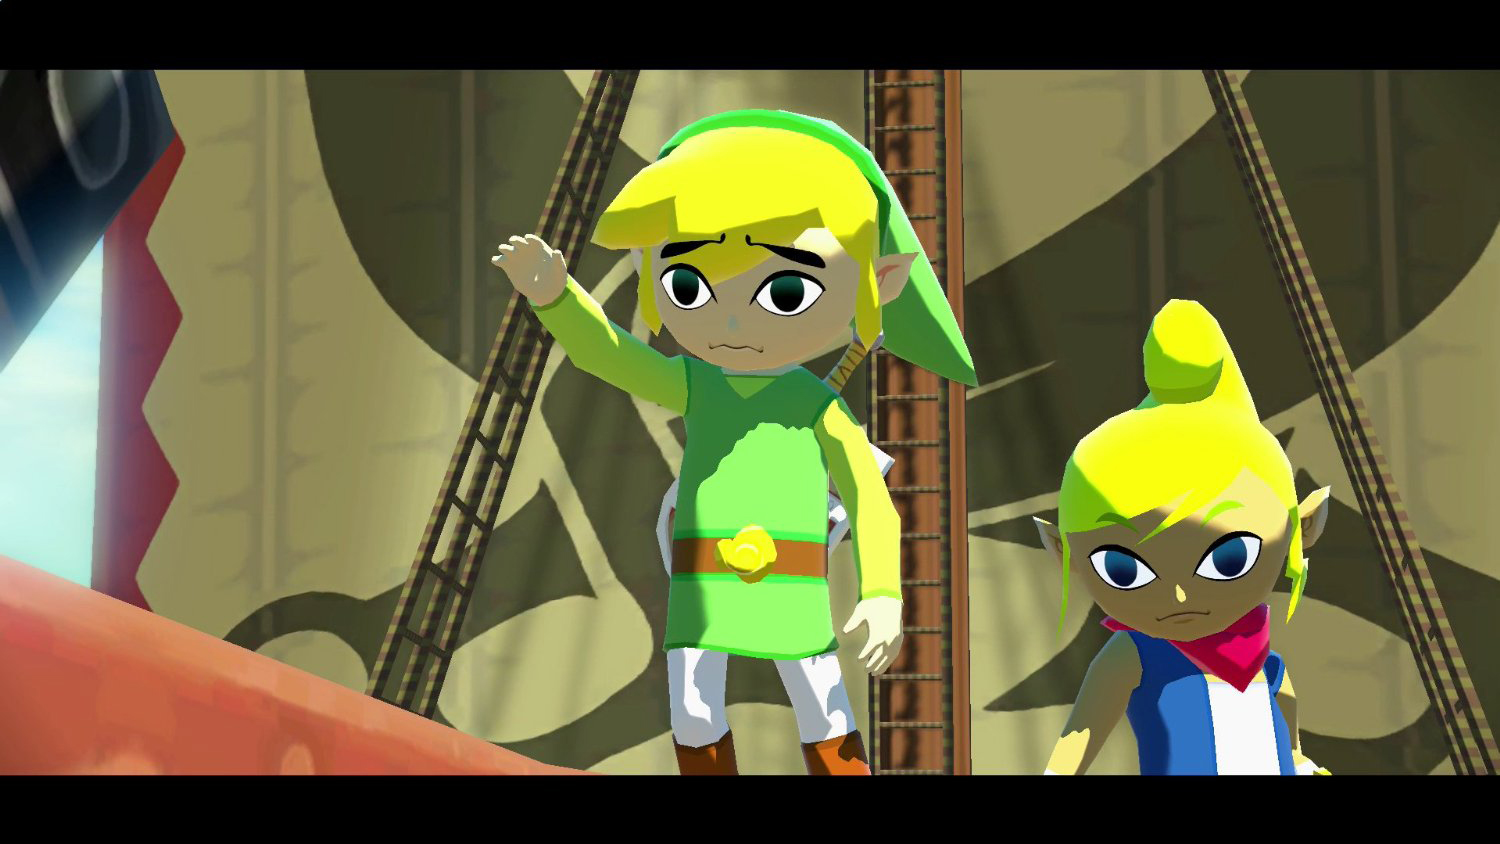 http://www.enthusiacs.com/wp-content/uploads/2015/03/Legend_of_Zelda__Wind_Waker_HD_13757578817066.jpg